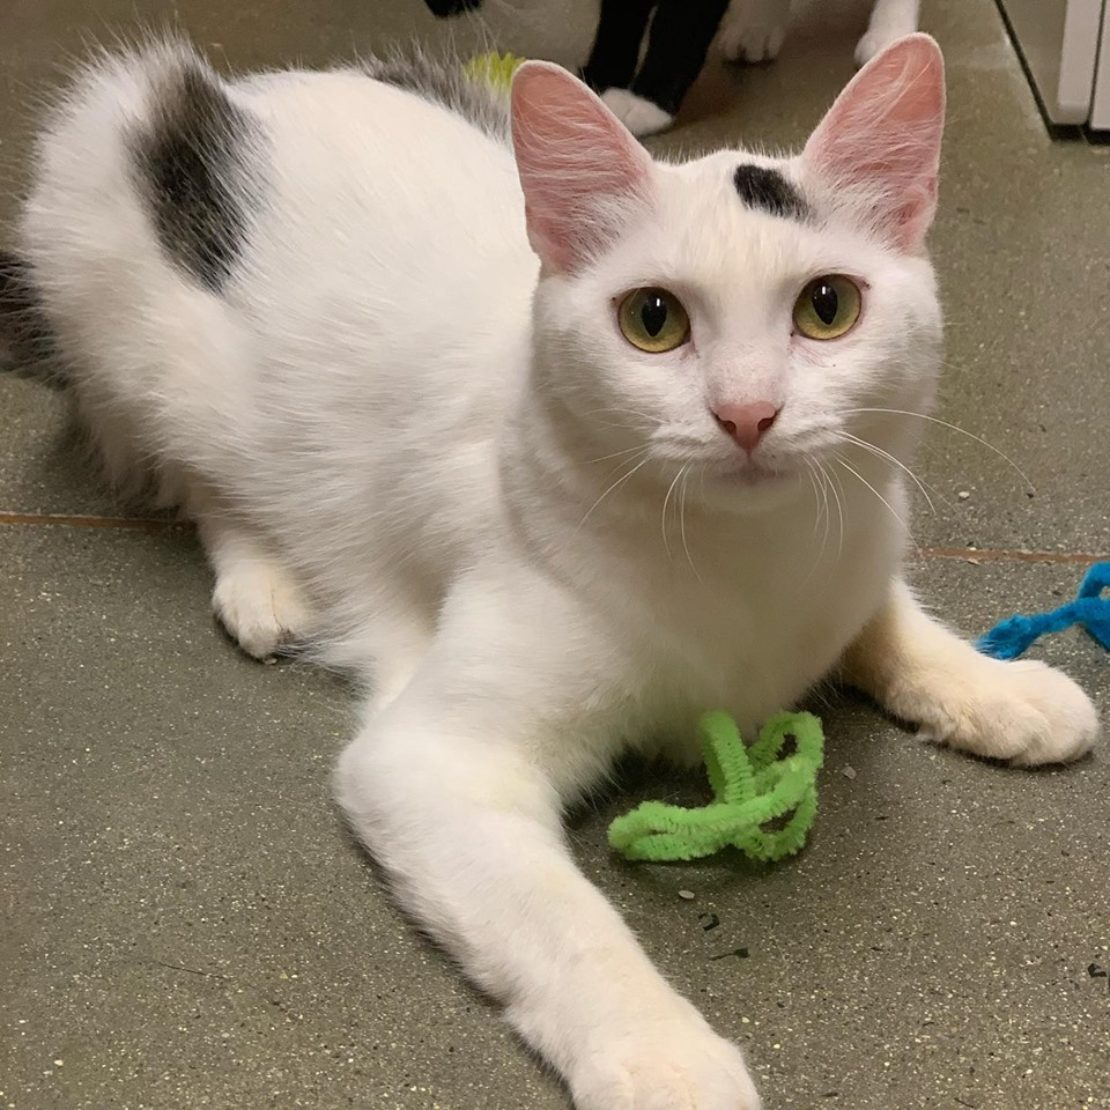 White cat with black marks on head and rump lies and looks up near a green wire toy.